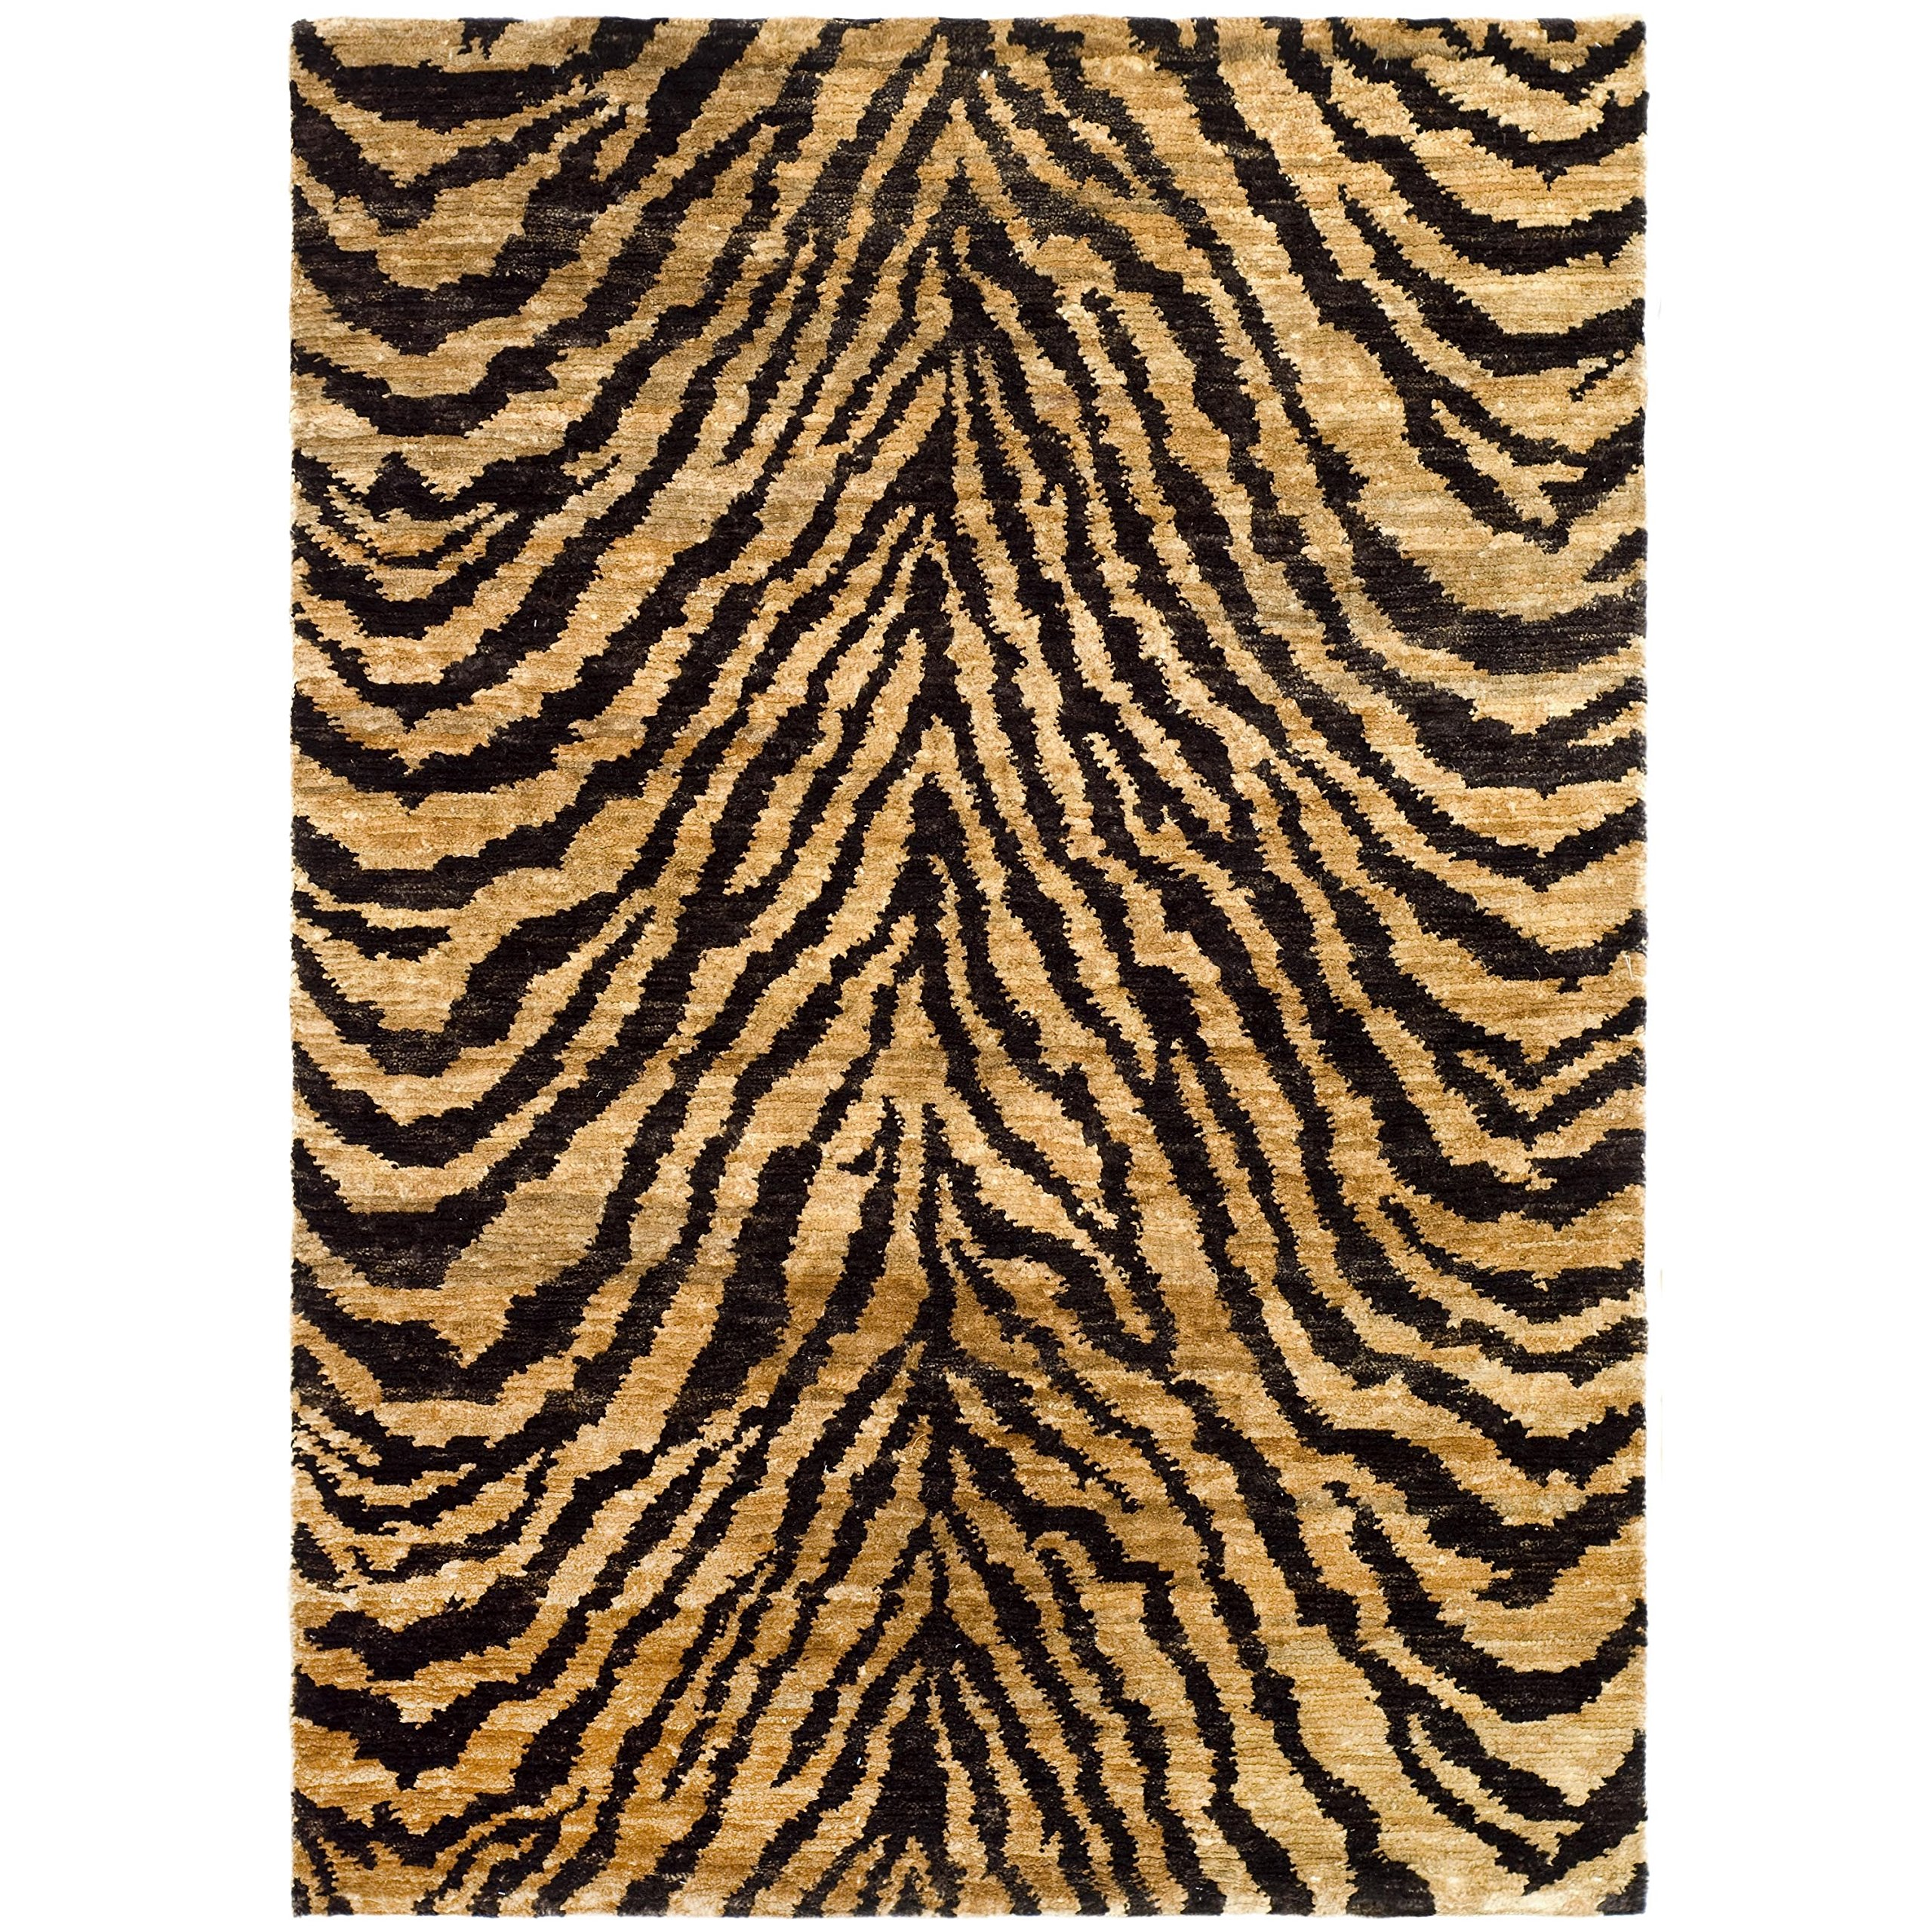 Safavieh Bohemian Collection BOH224A Hand-Knotted Natural and Black Jute Area Rug (5' x 8')